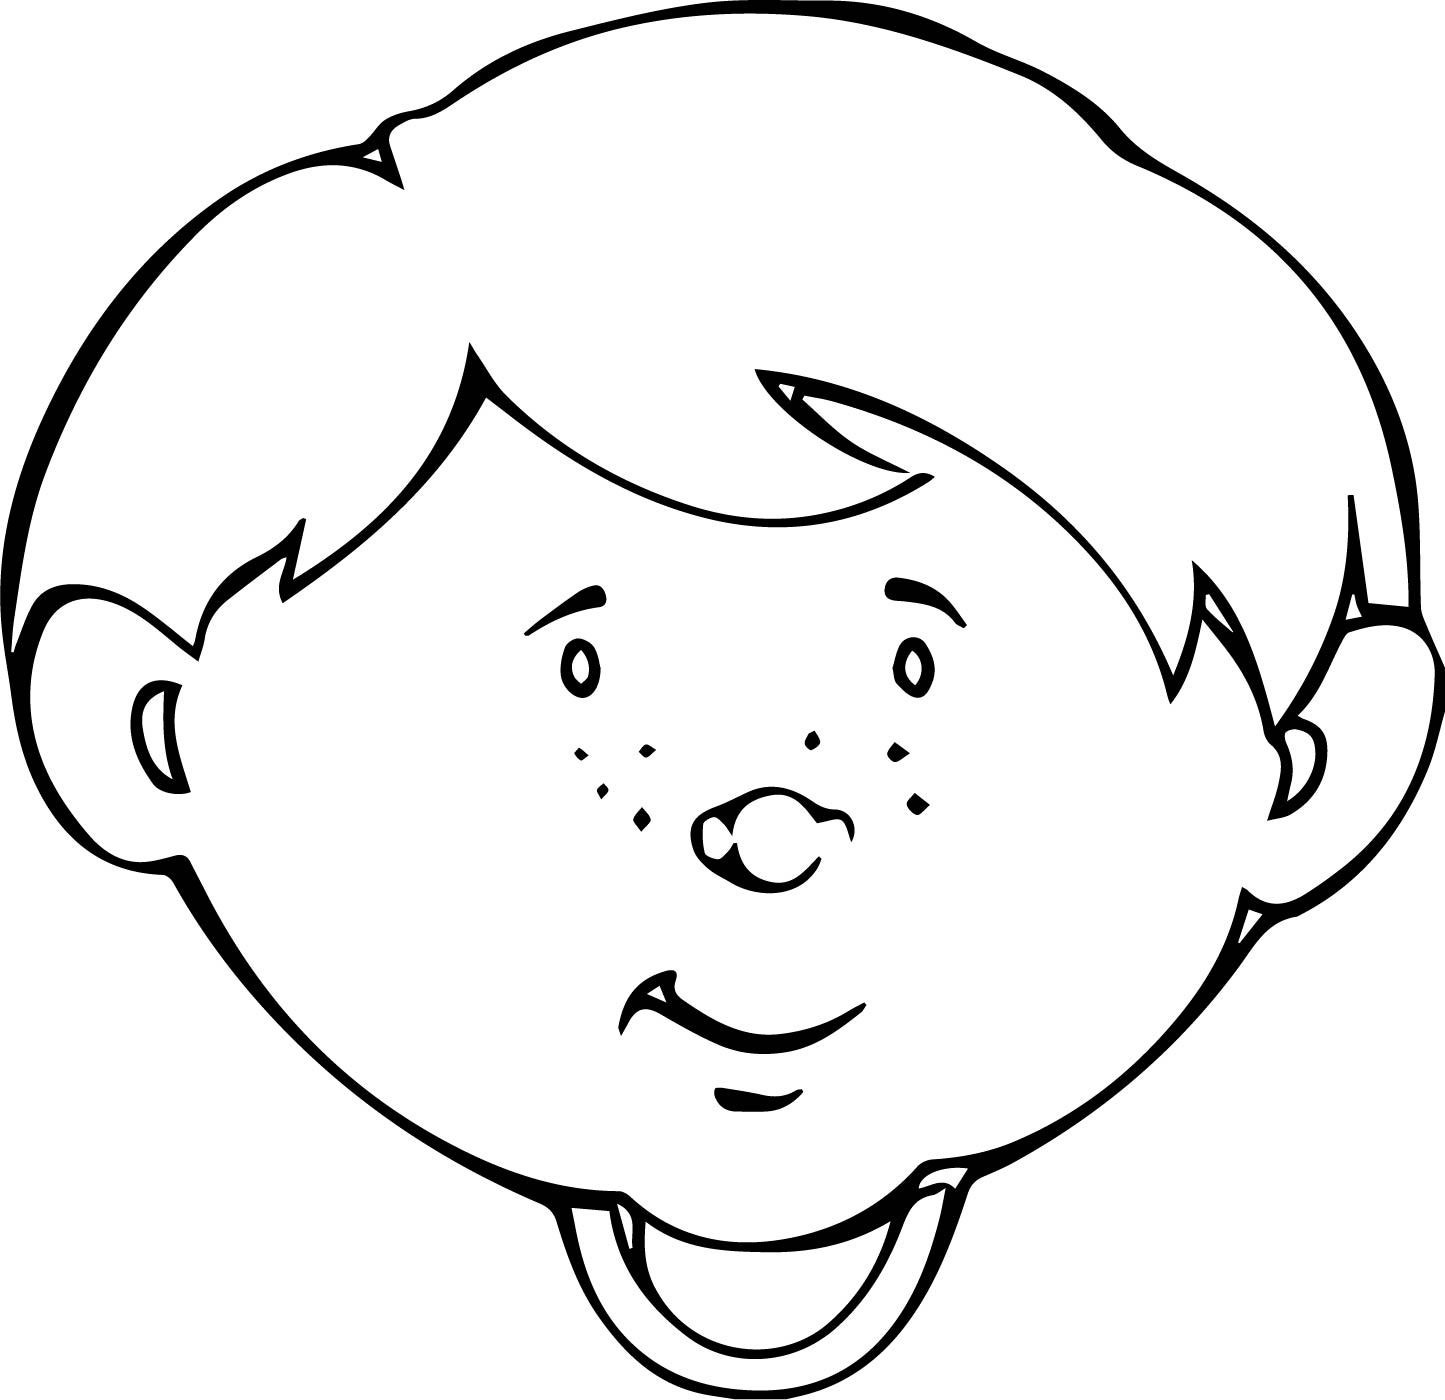 Nice Cute Child Face Coloring Page Coloring Pages Unique Coloring Pages Coloring Pages For Boys